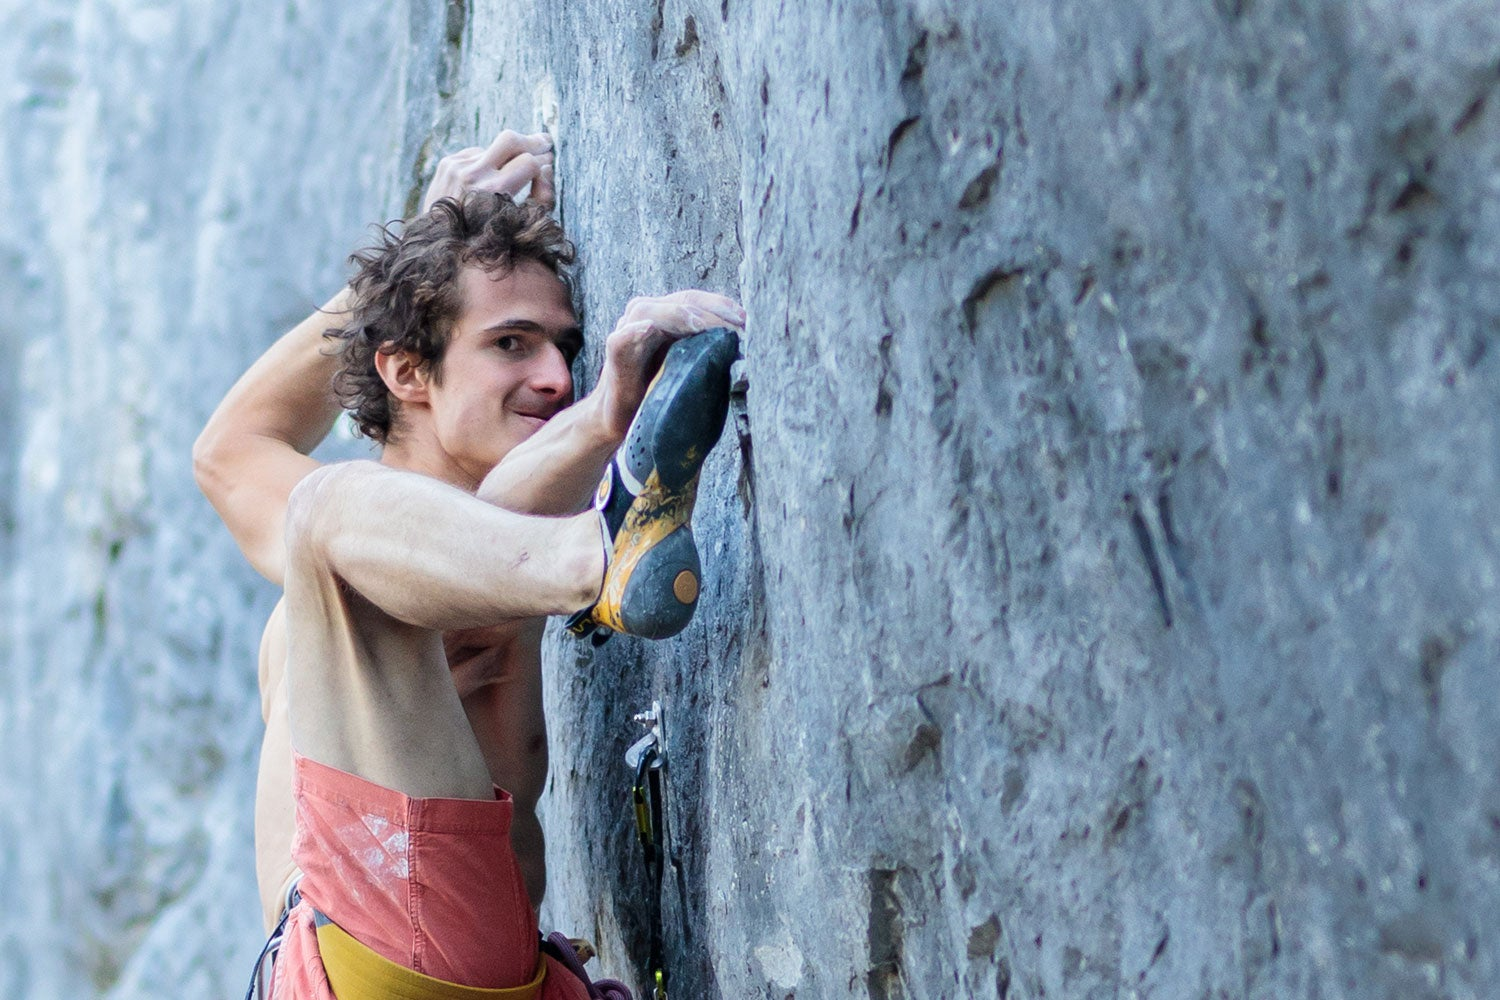 A climber clings to a vertical wall, grimacing as he matches he foot to his hand hold.